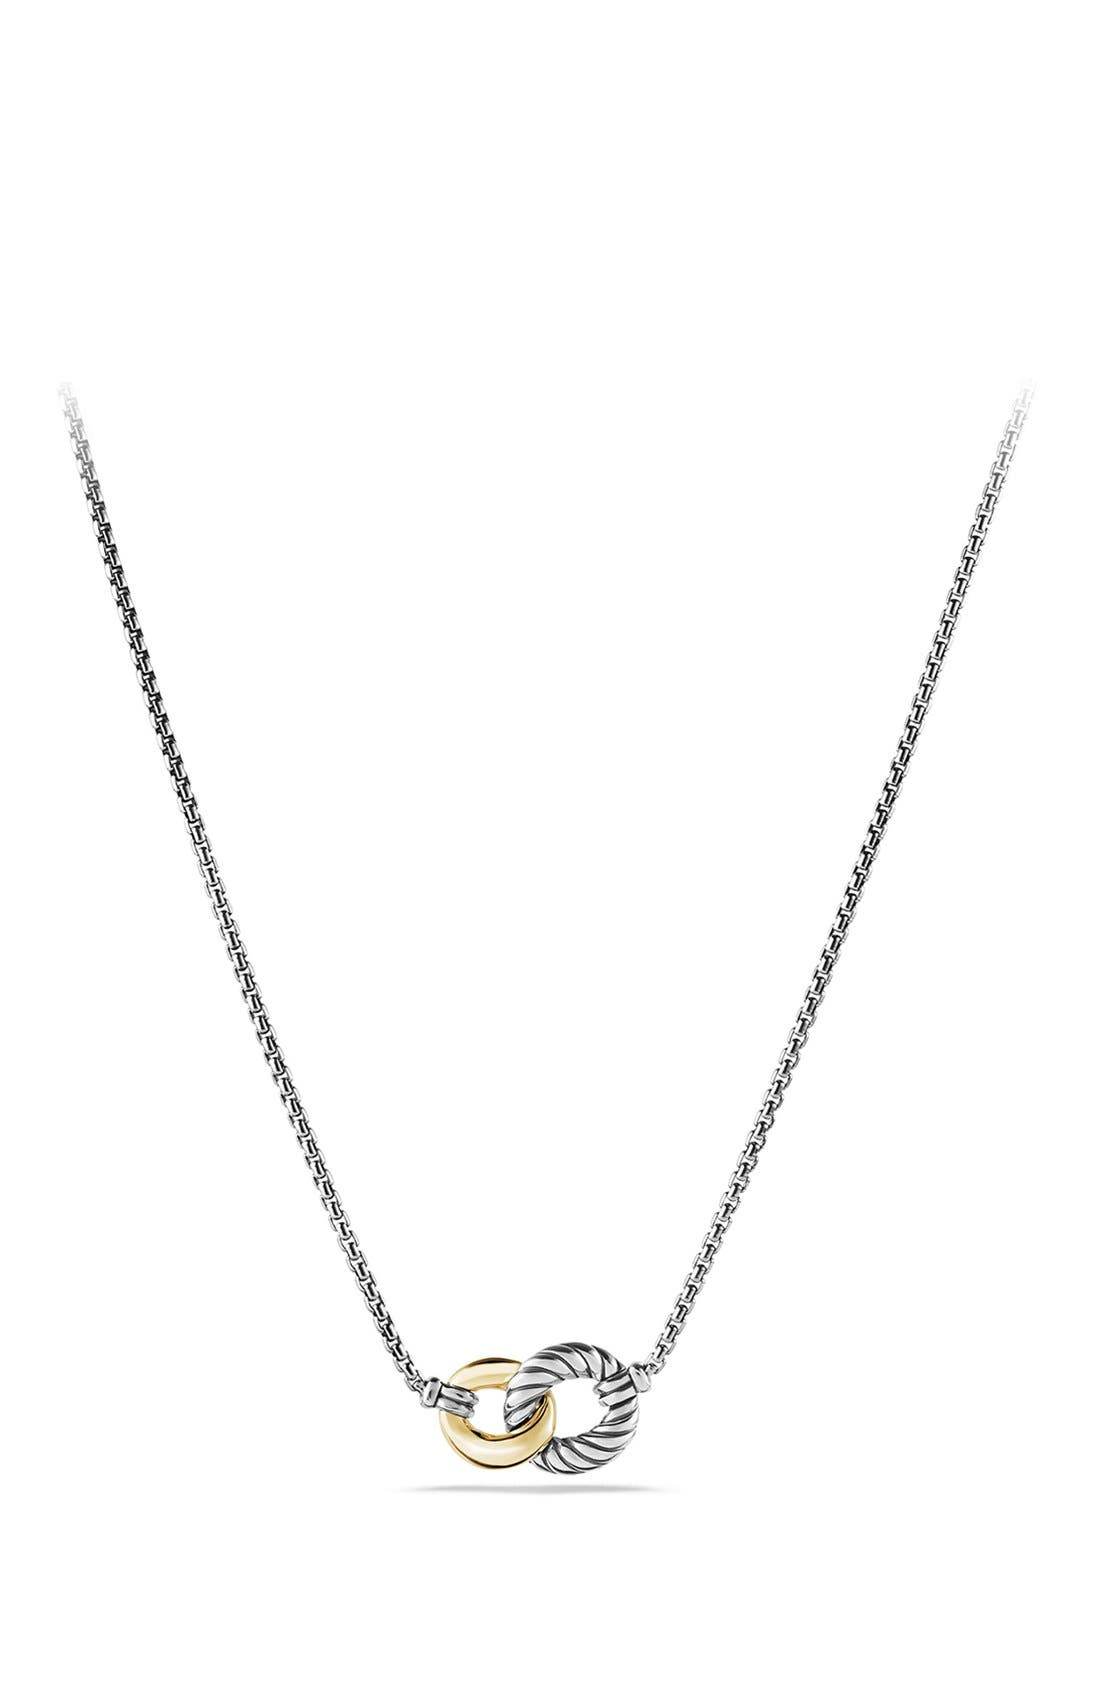 Main Image - David Yurman'Belmont' Curb Link Necklace with 18K Gold